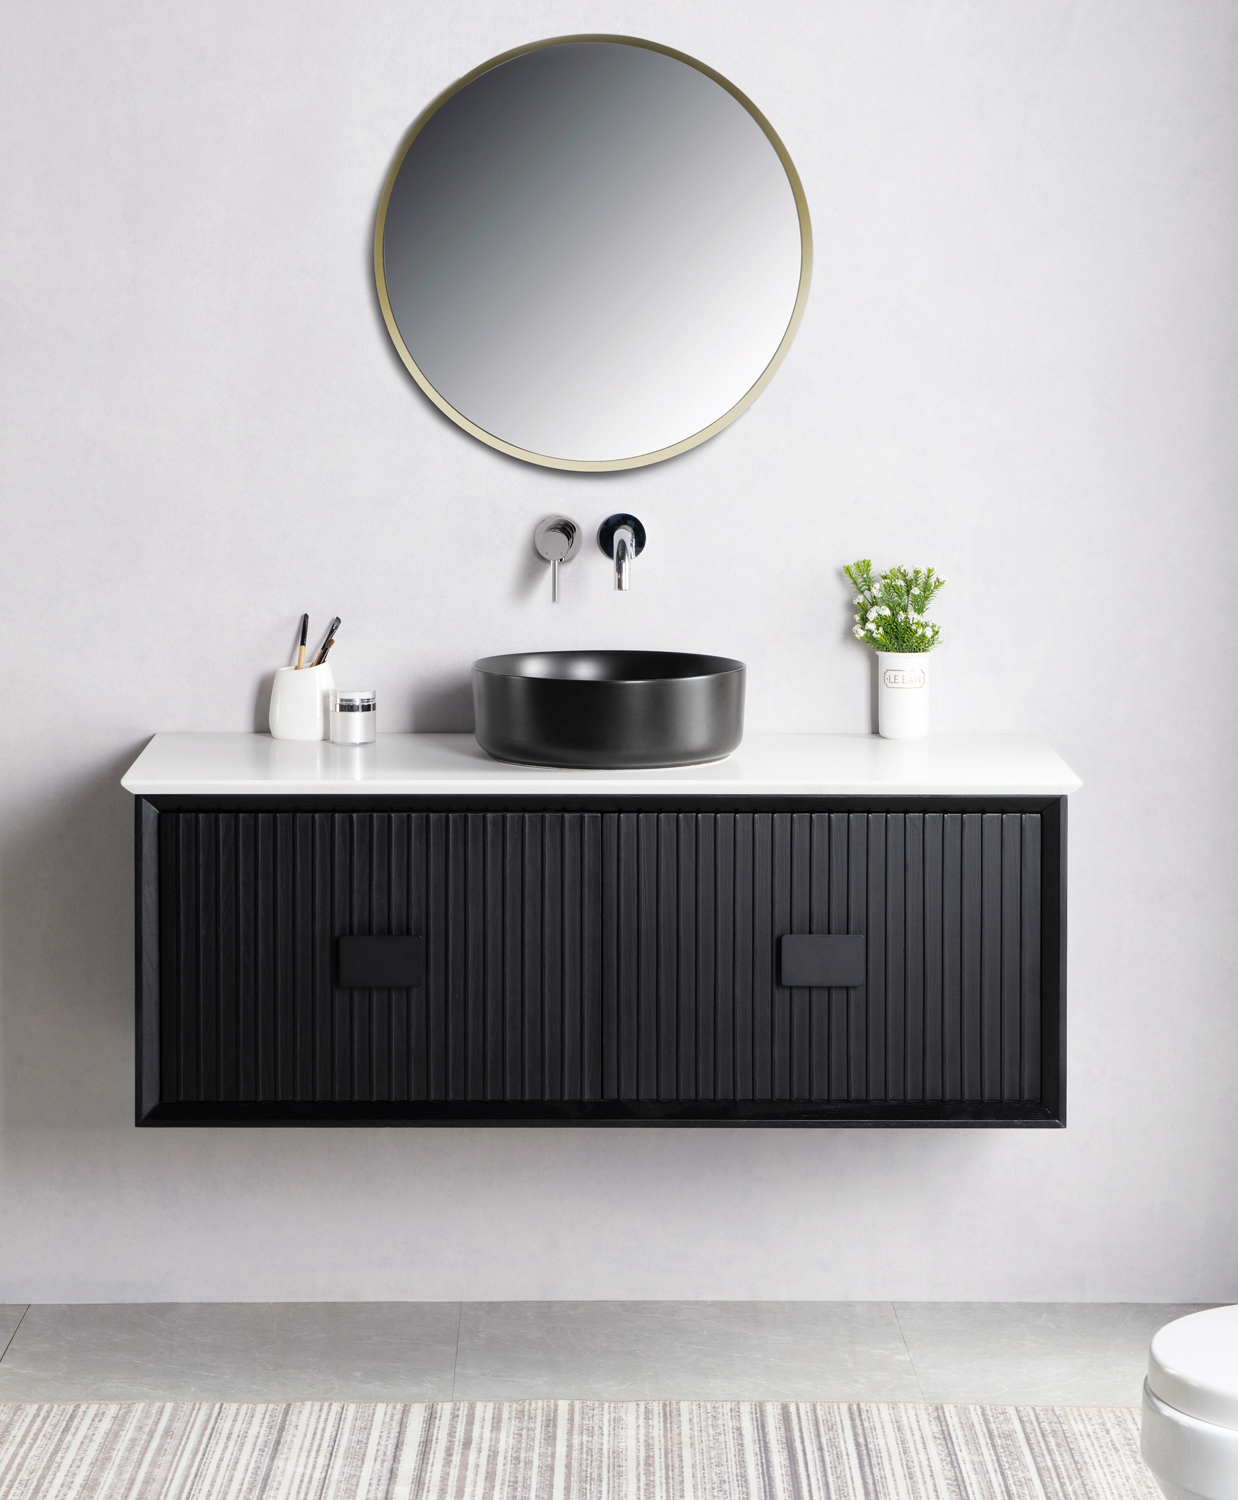 Stylish wall-hung vanities for a clutter-free bathroom